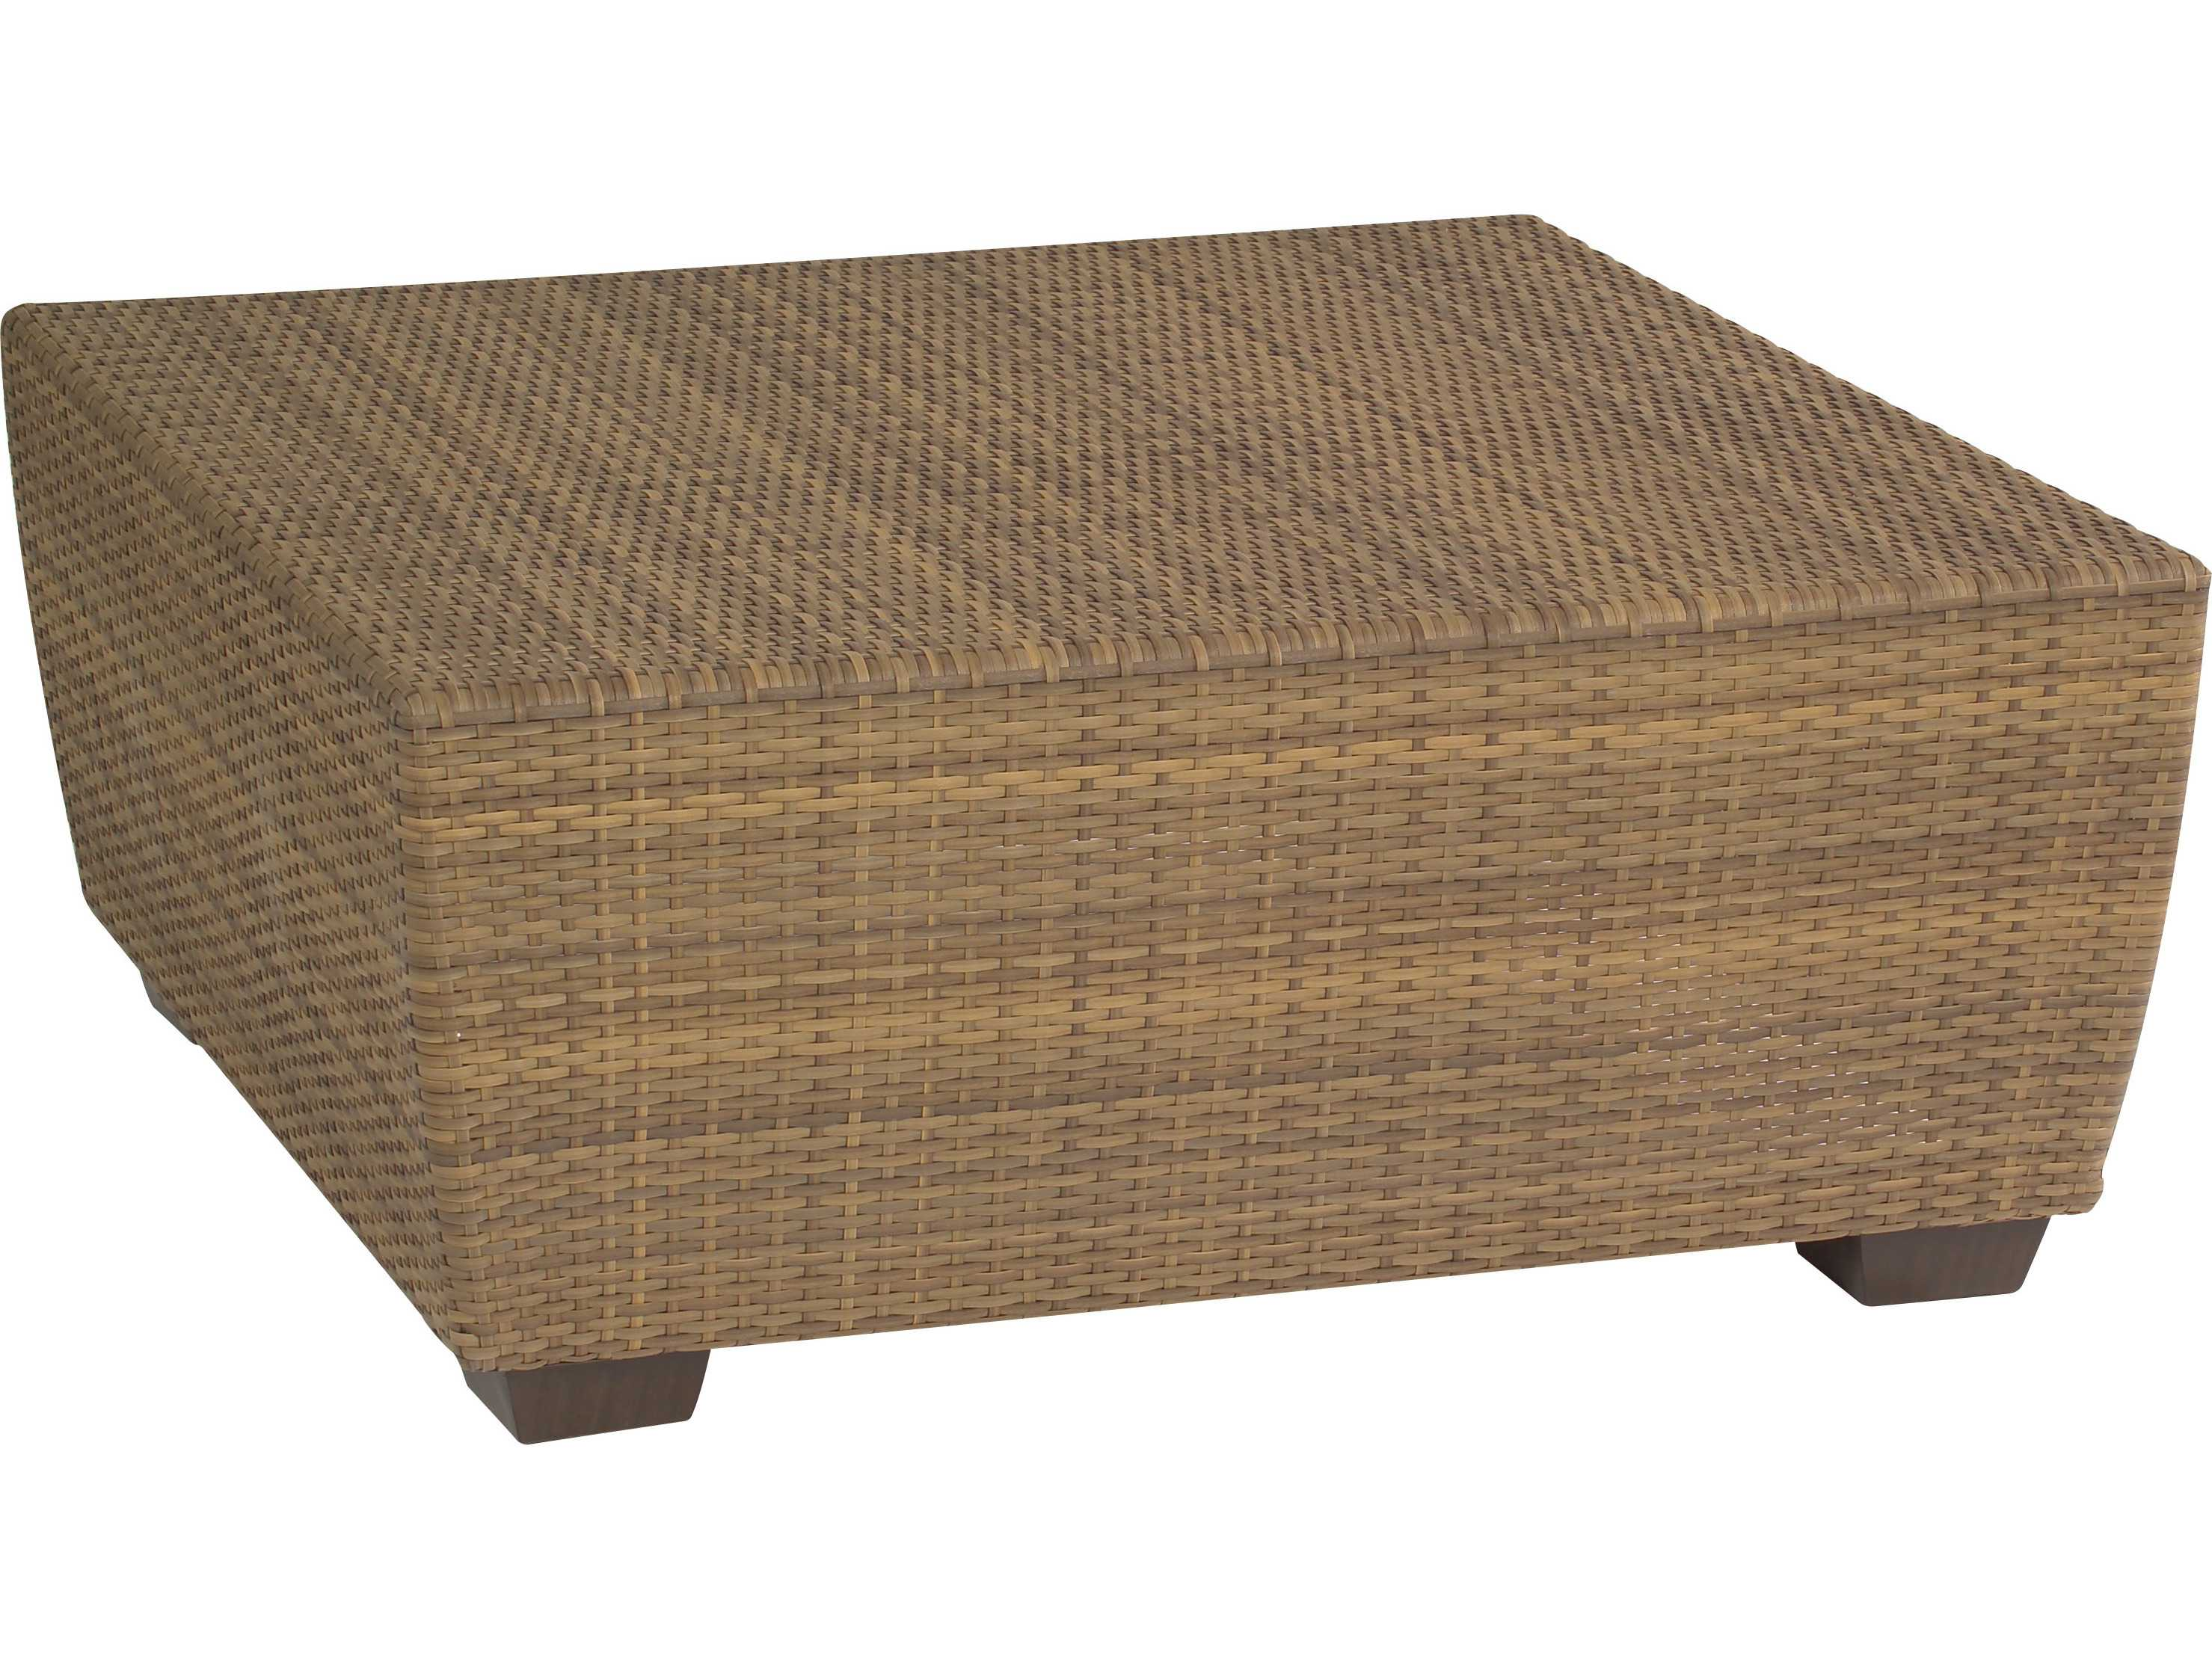 Whitecraft saddleback wicker square 42 coffee table s523211 White wicker coffee table